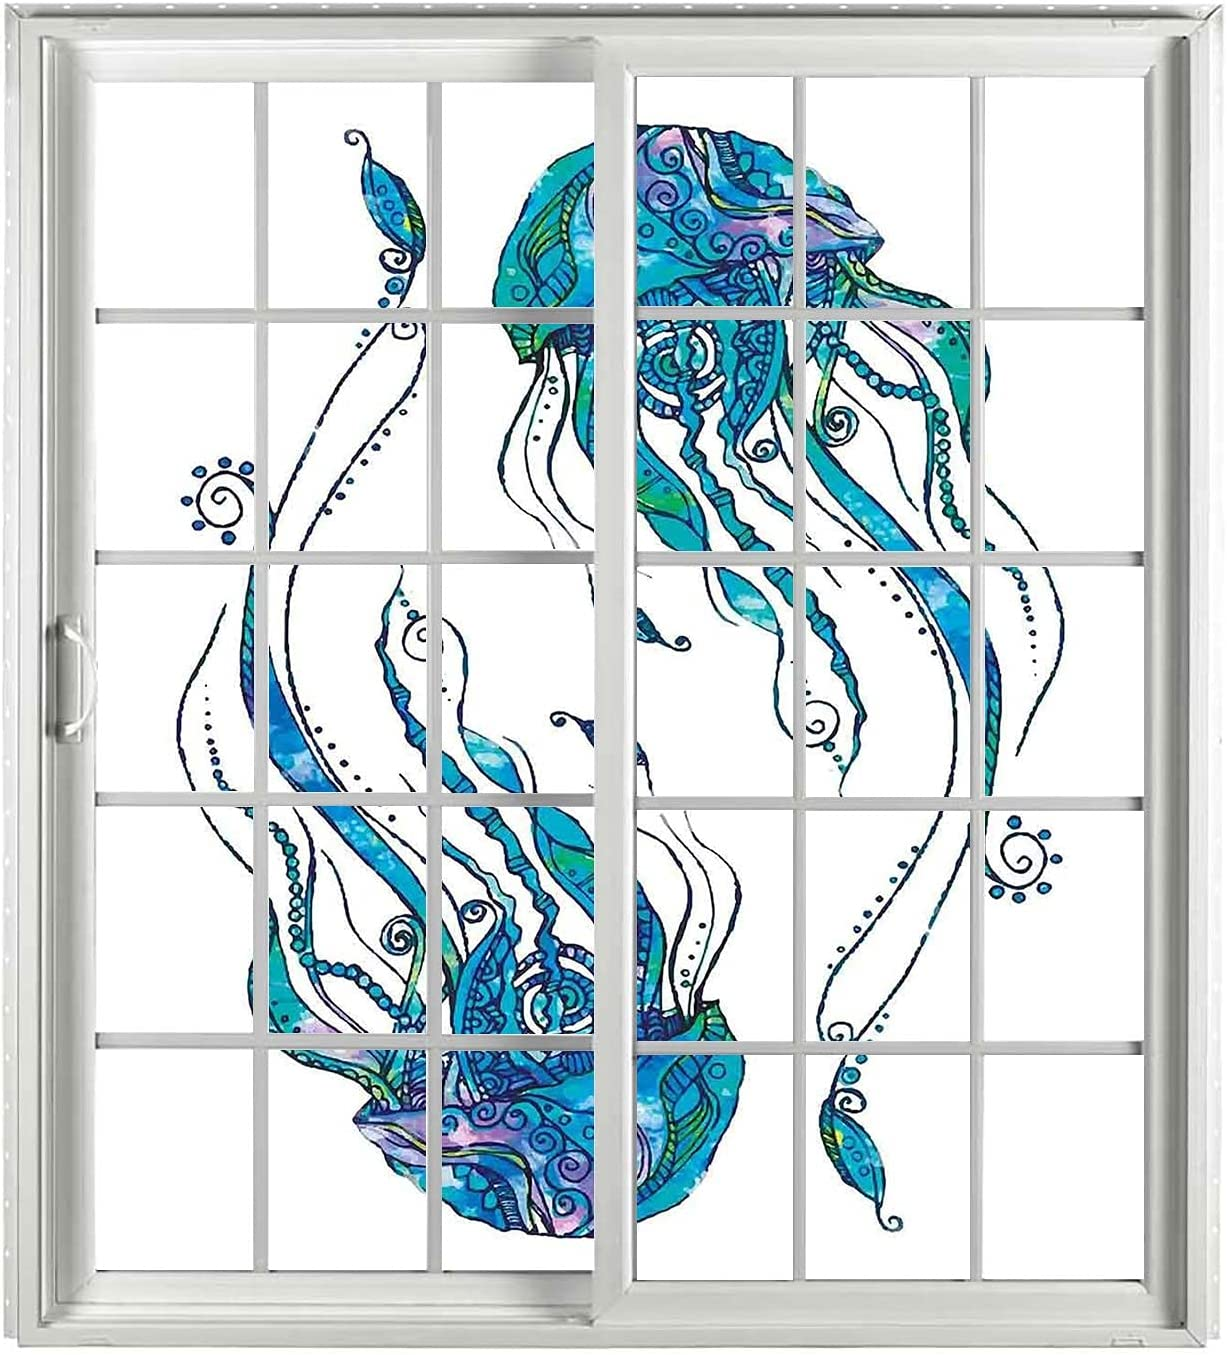 Jellyfish Decor Stain Glass Window Cling Set PCS 2 Max 78% OFF Turquoise Super sale Rem